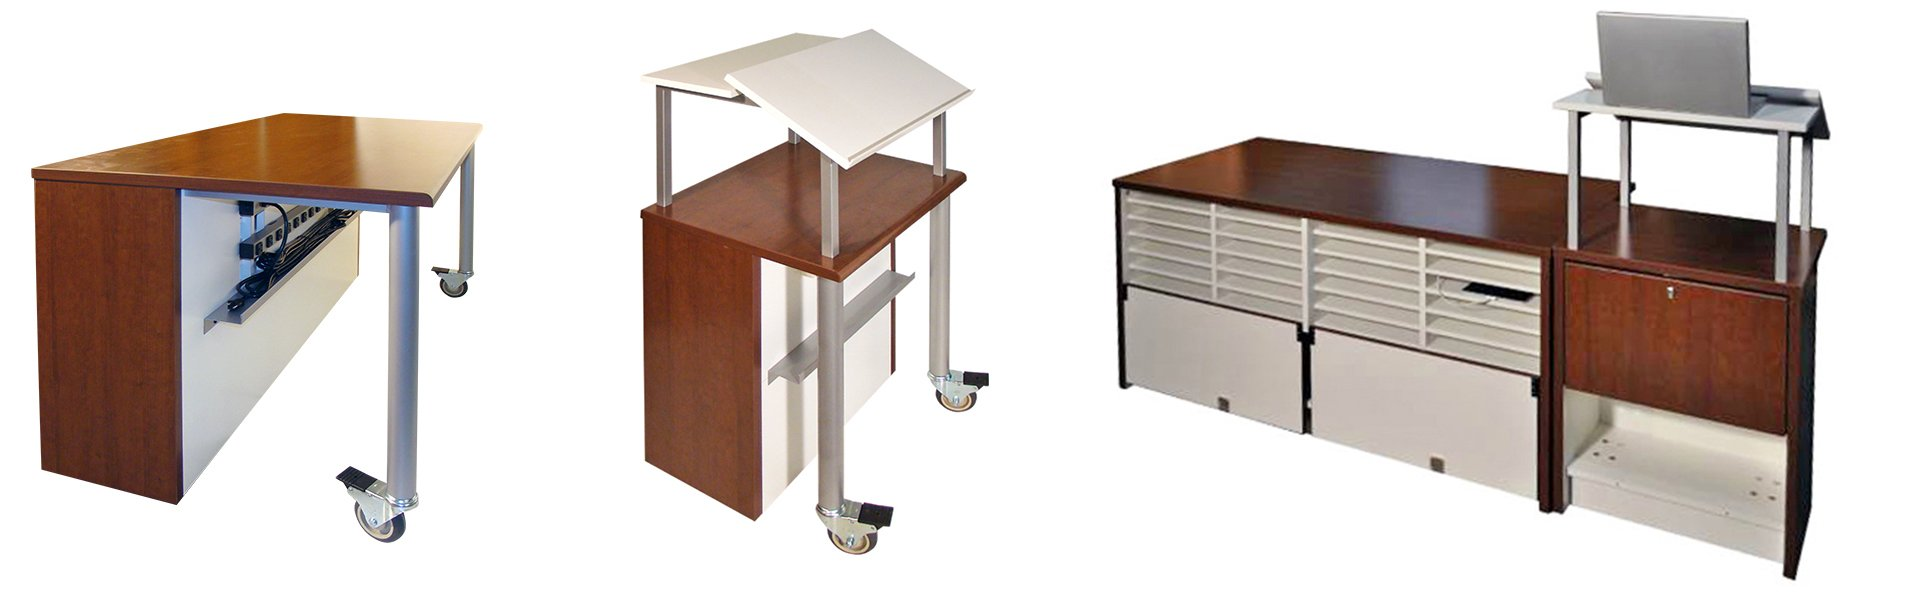 Evolutions Charging Desk and Lectern